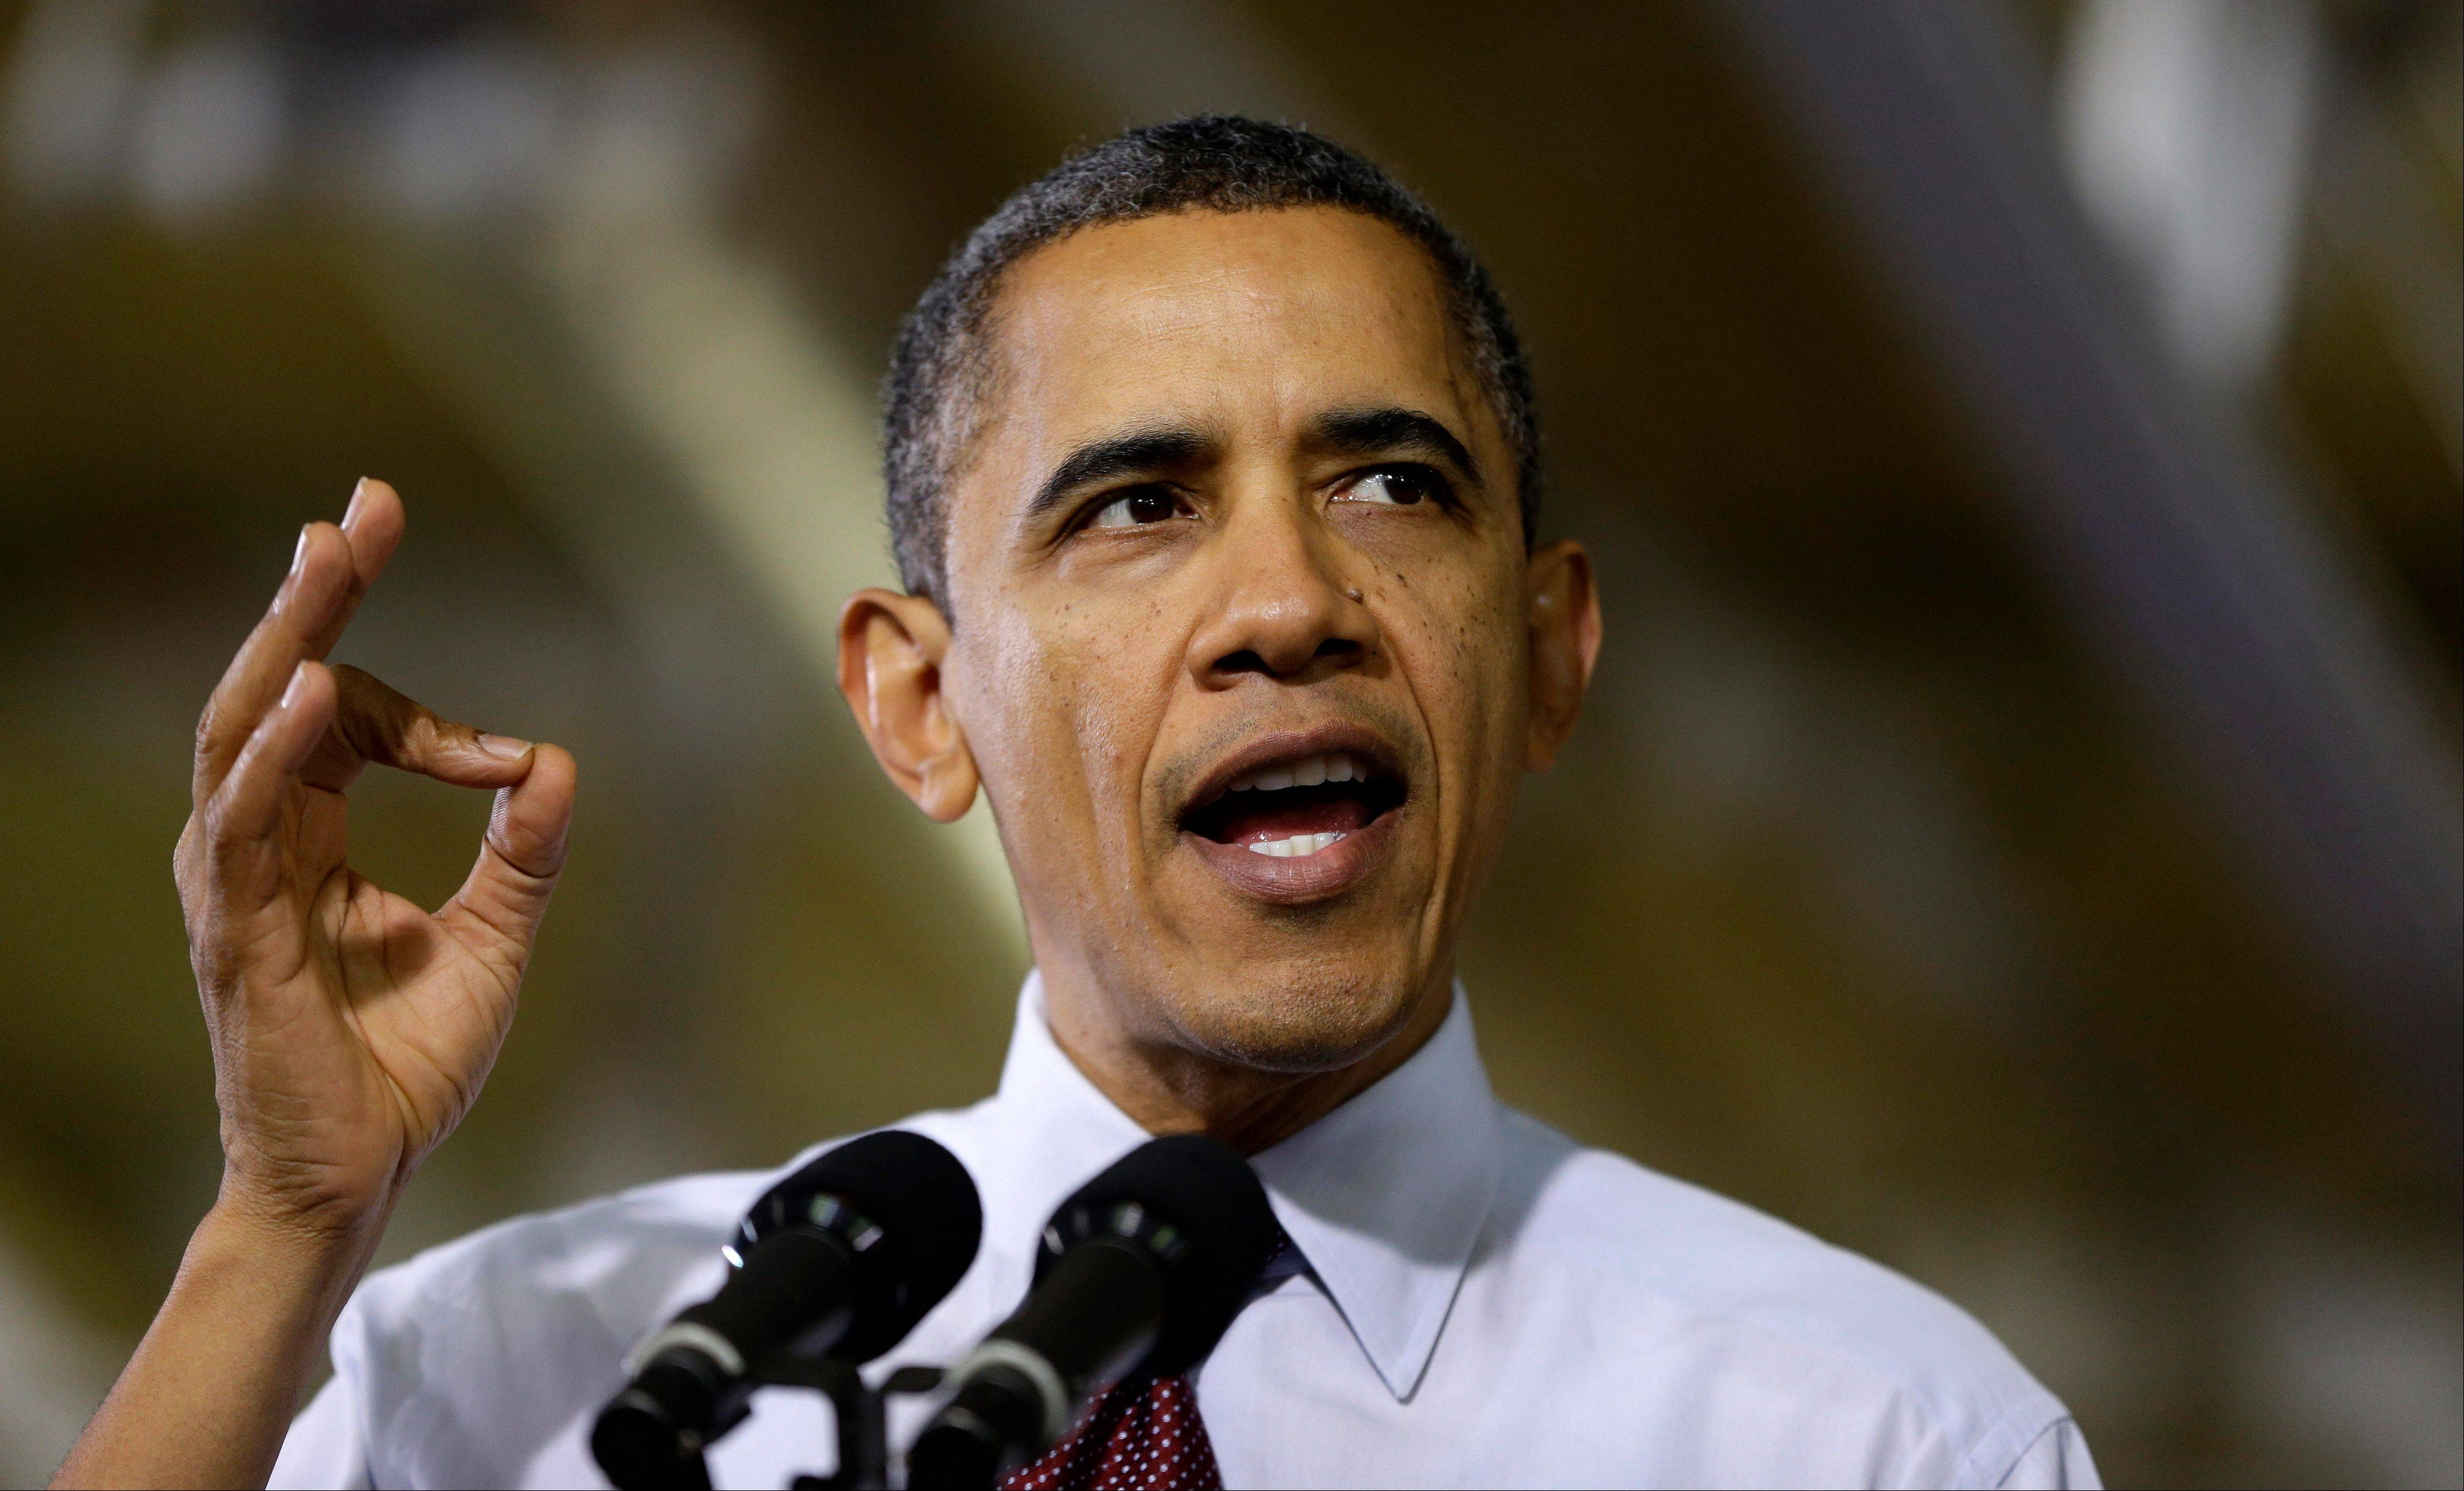 President Barack Obama speaks to workers about the economy during a visit to the Daimler Detroit Diesel plant in Redford, Mich., Monday.